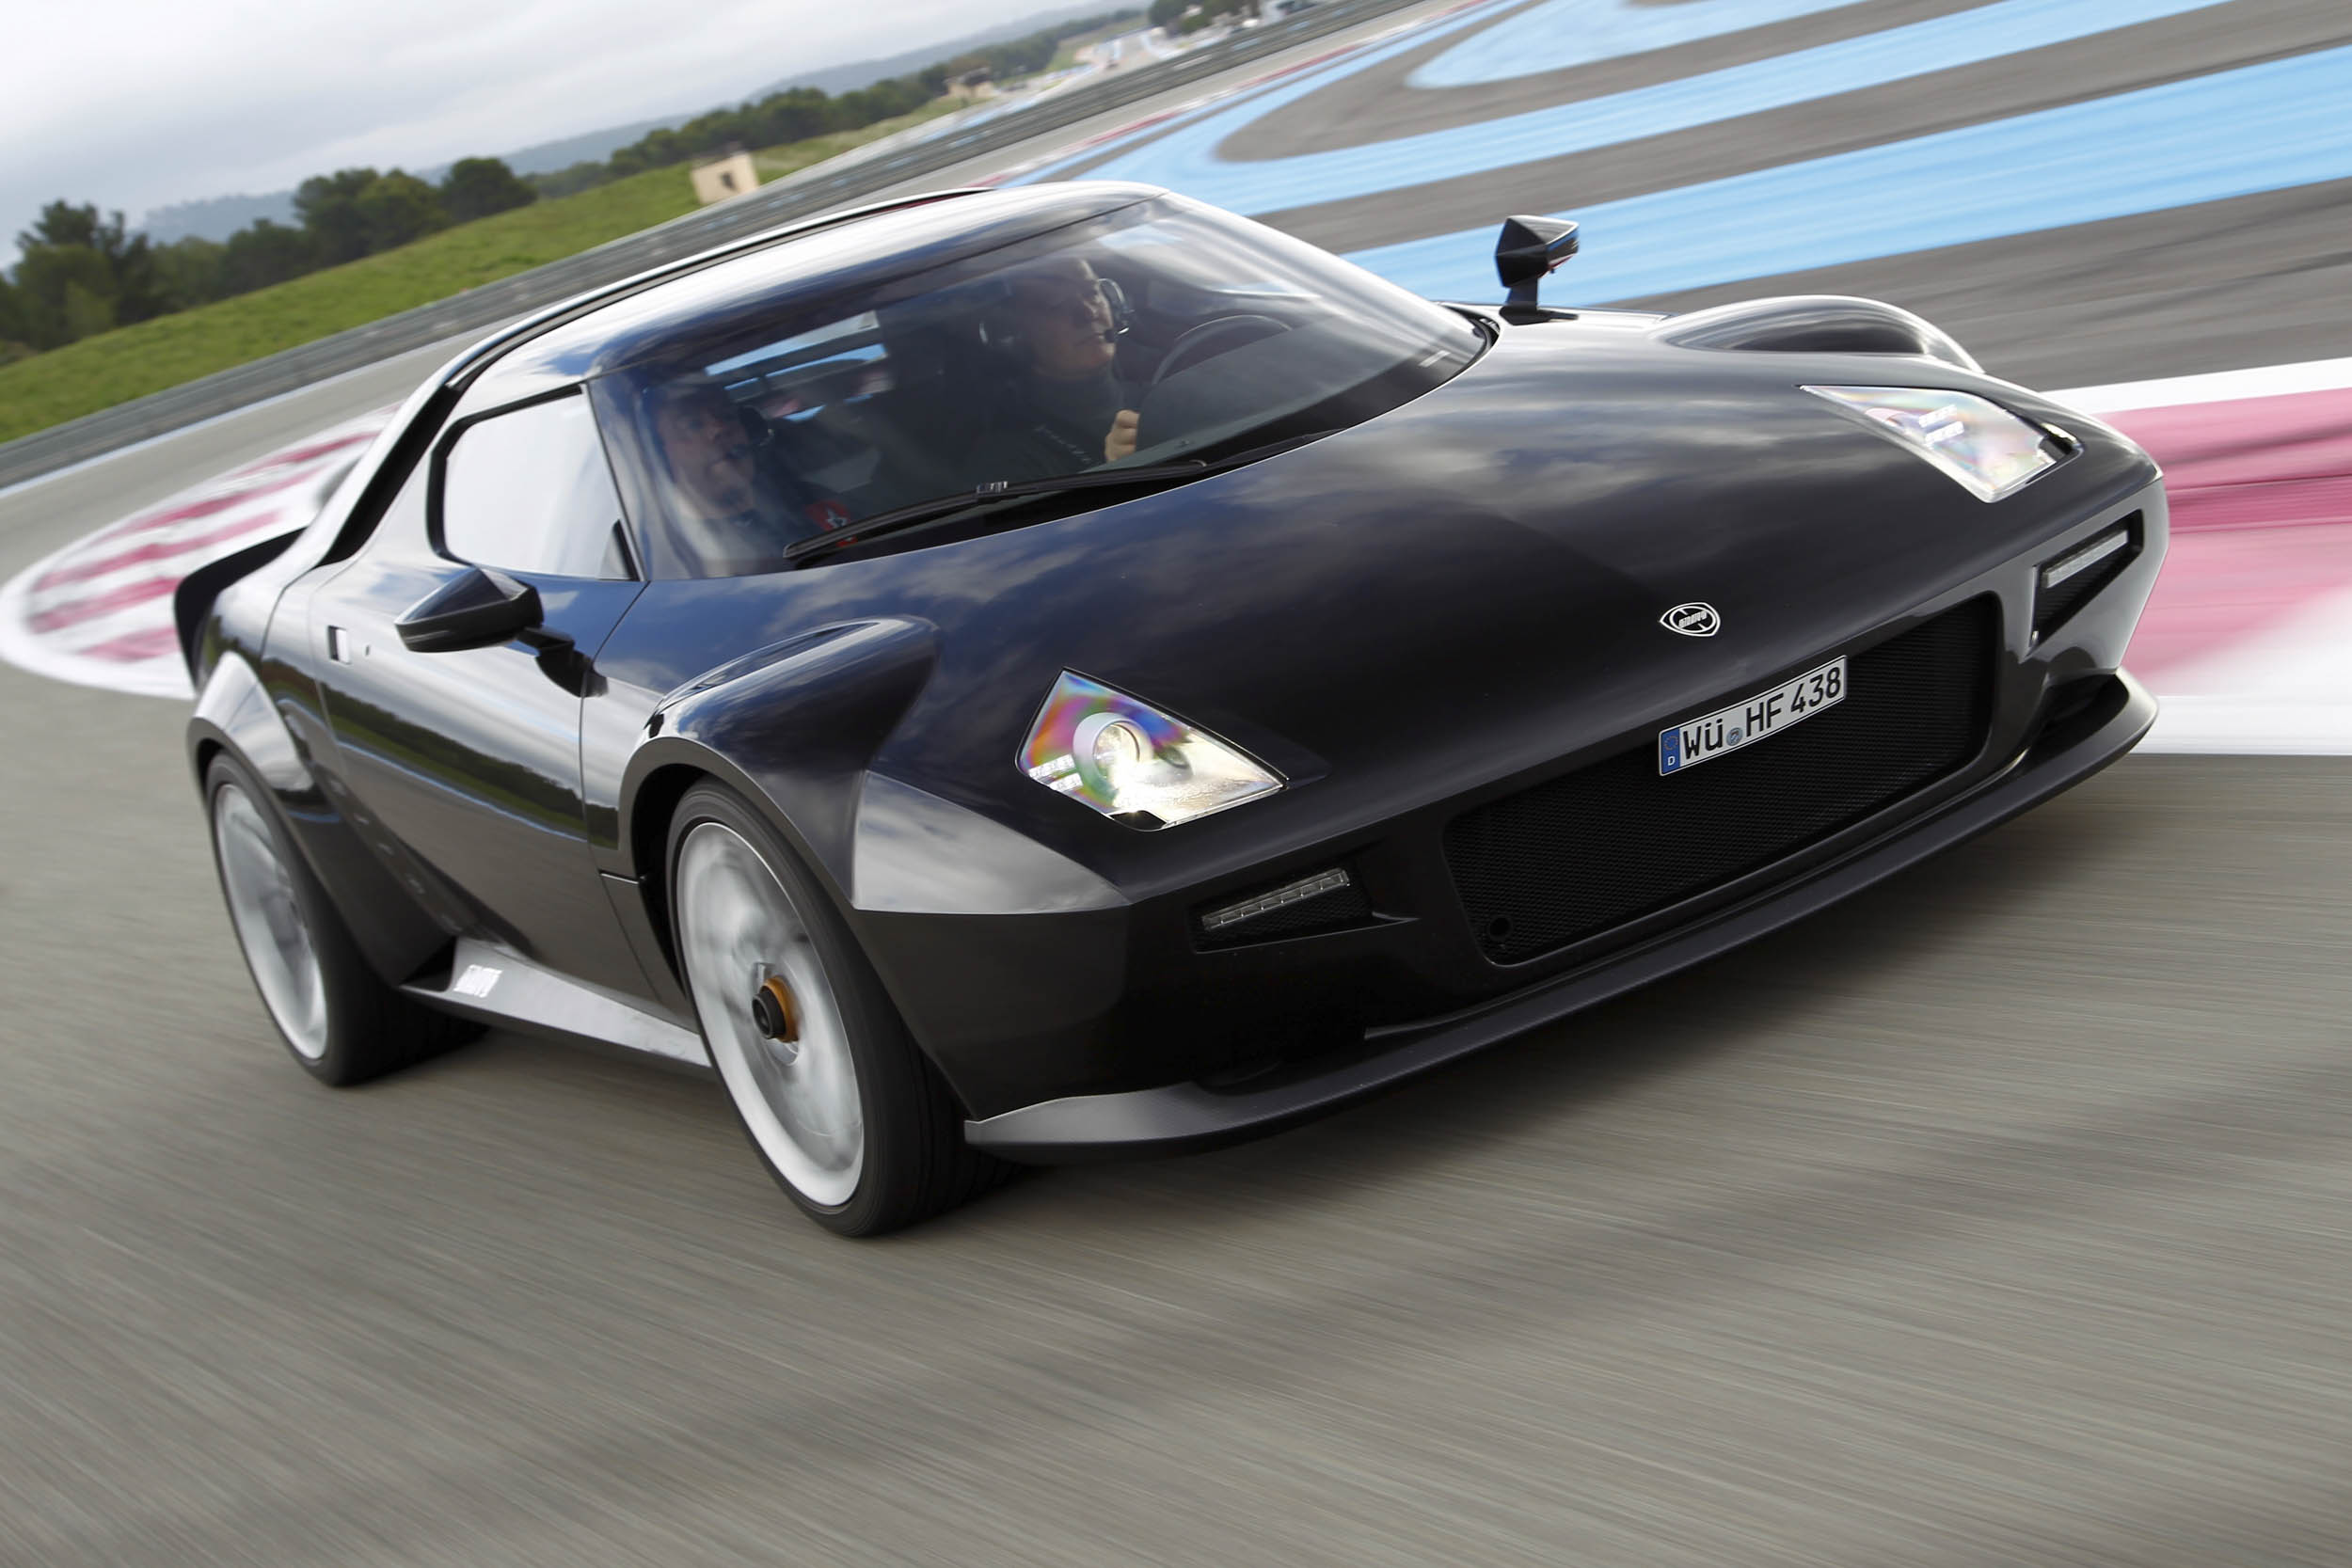 New Stratos on the track